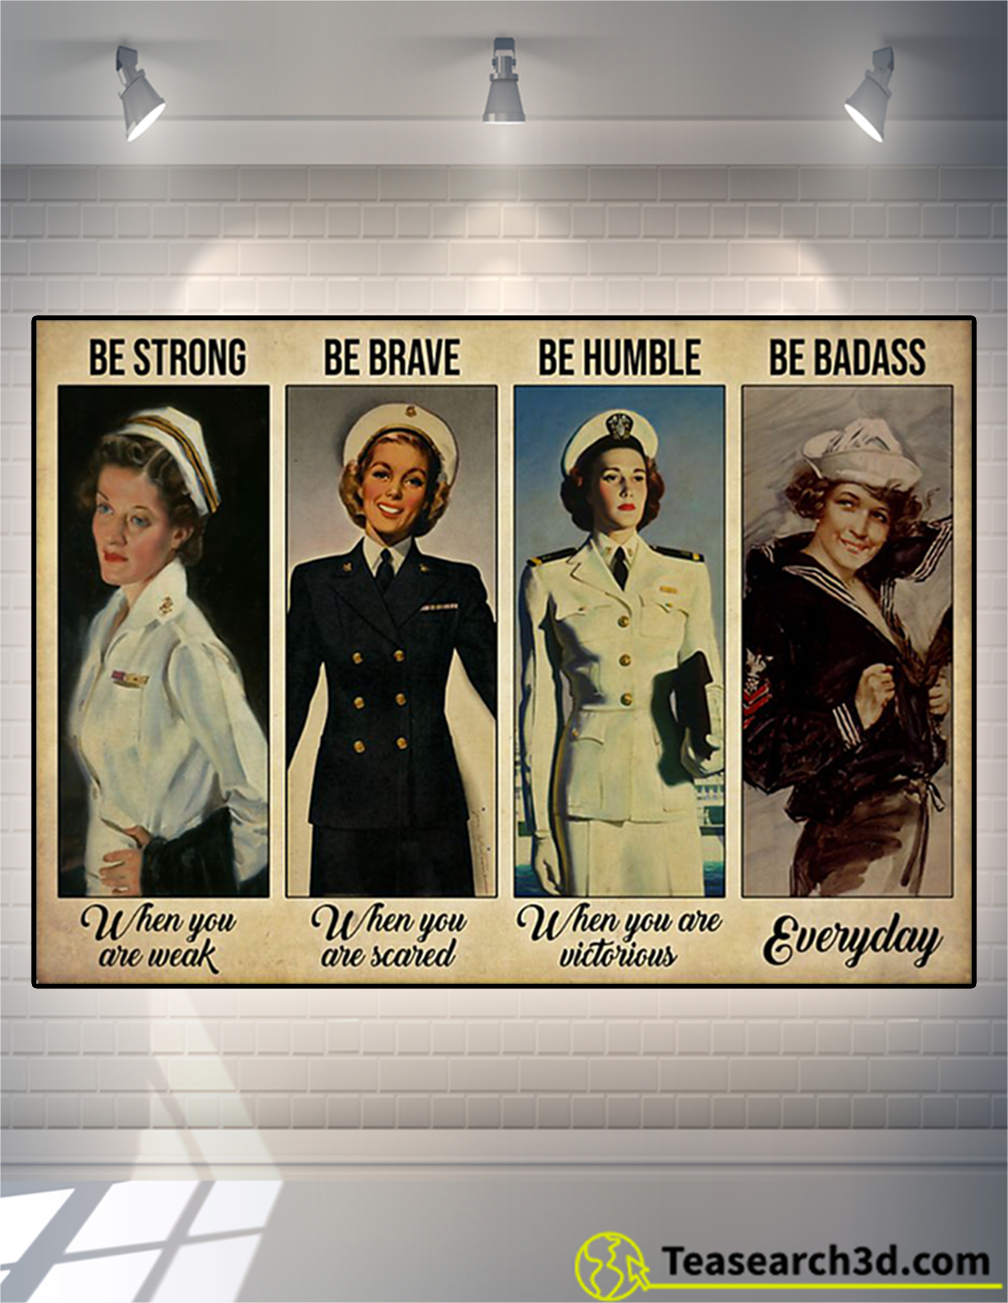 Female navy be strong be brave be humble be badass poster